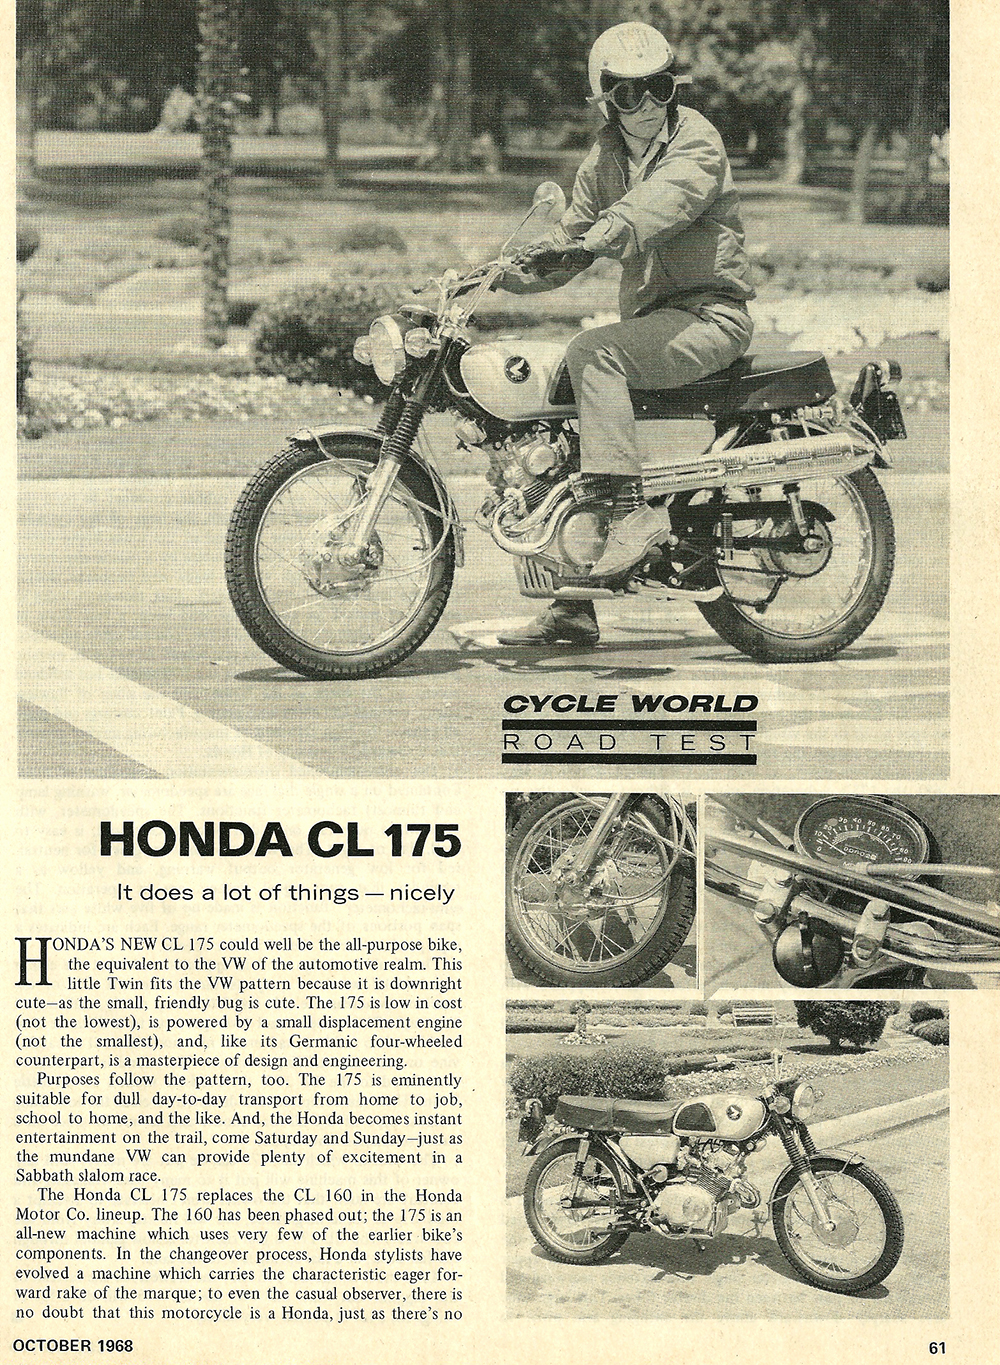 1968 Honda CL 175 road test 01.jpg